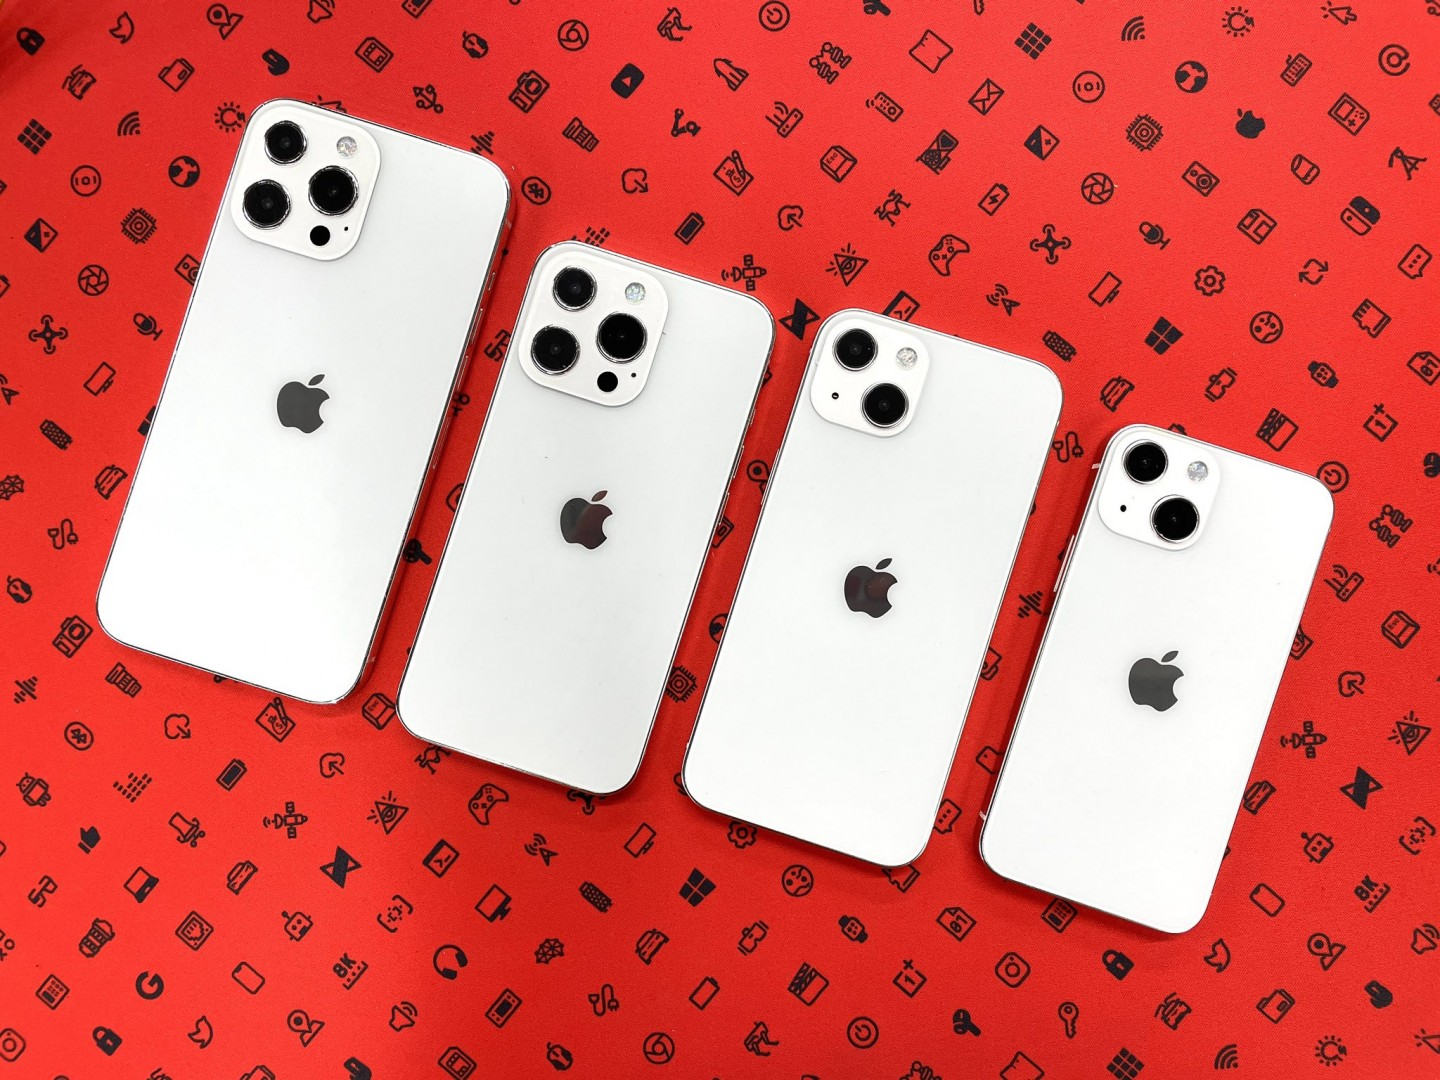 iphone 13 mkbhd